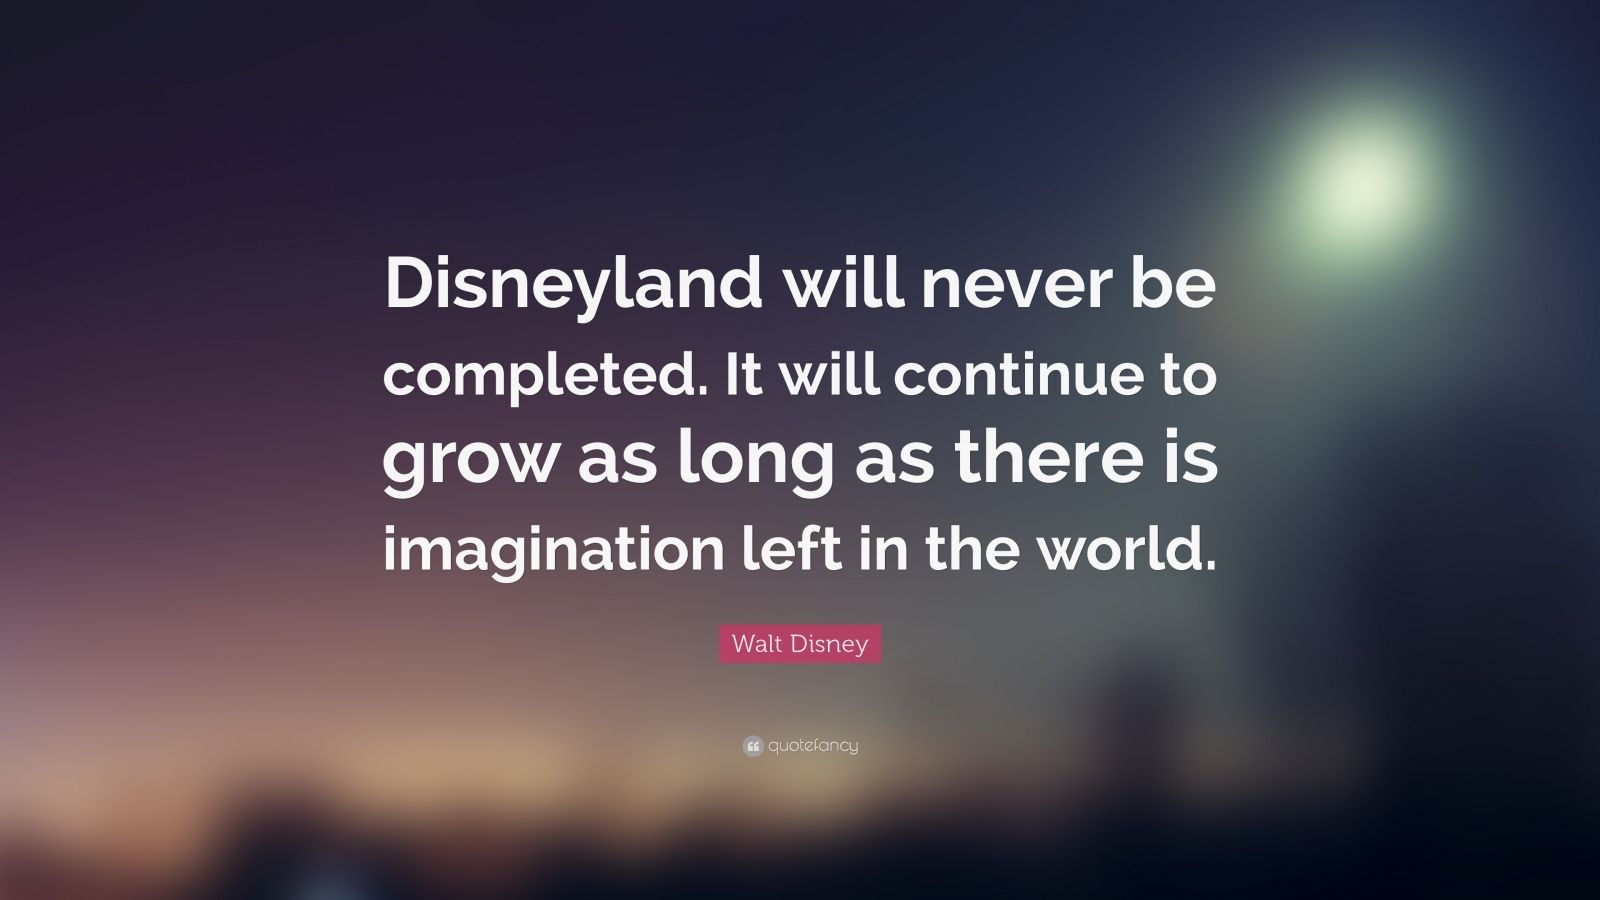 Wasting Time Quotes Wallpaper Walt Disney Quote Disneyland Will Never Be Completed It